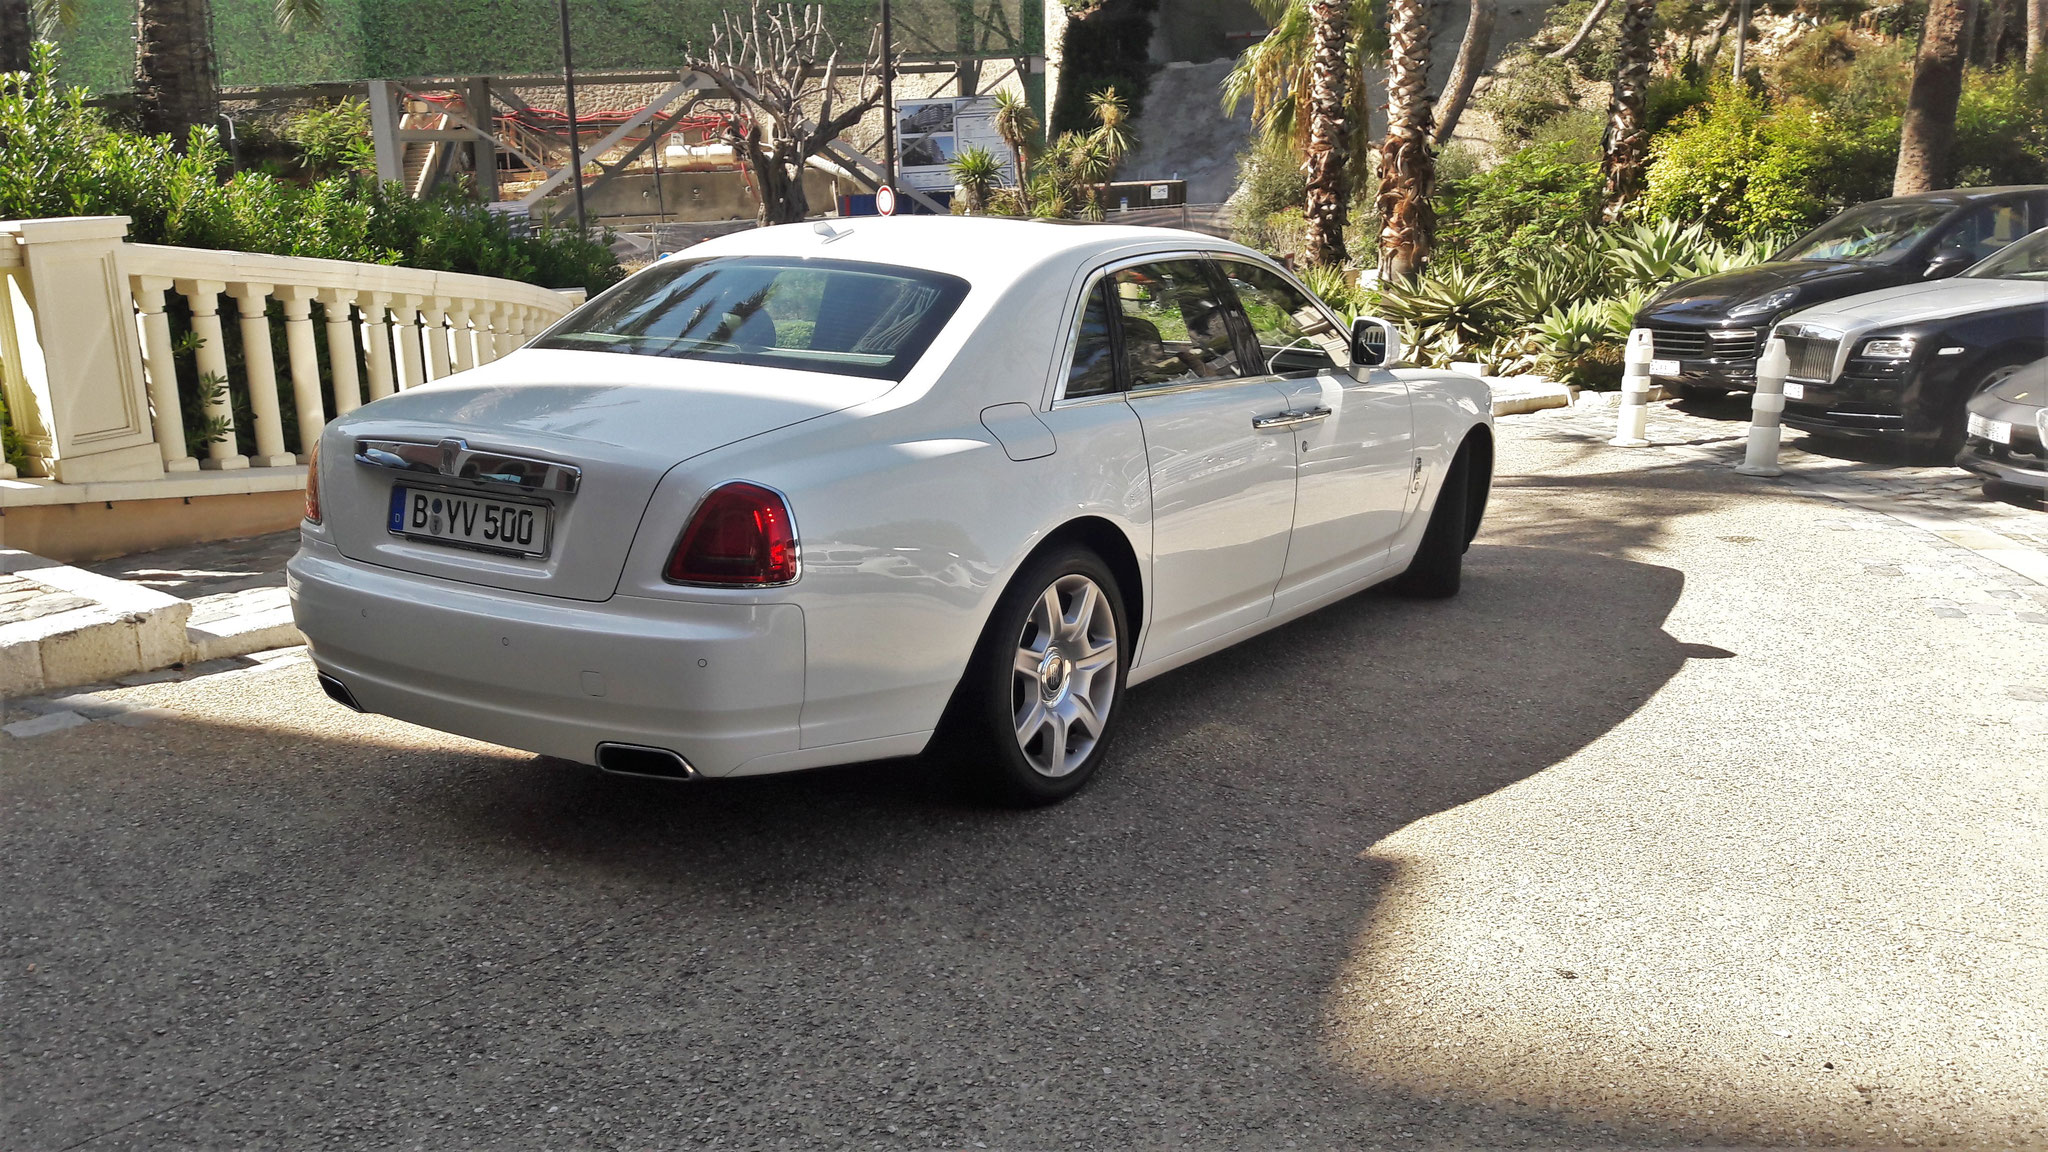 Rolls Royce Ghost Series II - B-YV-500